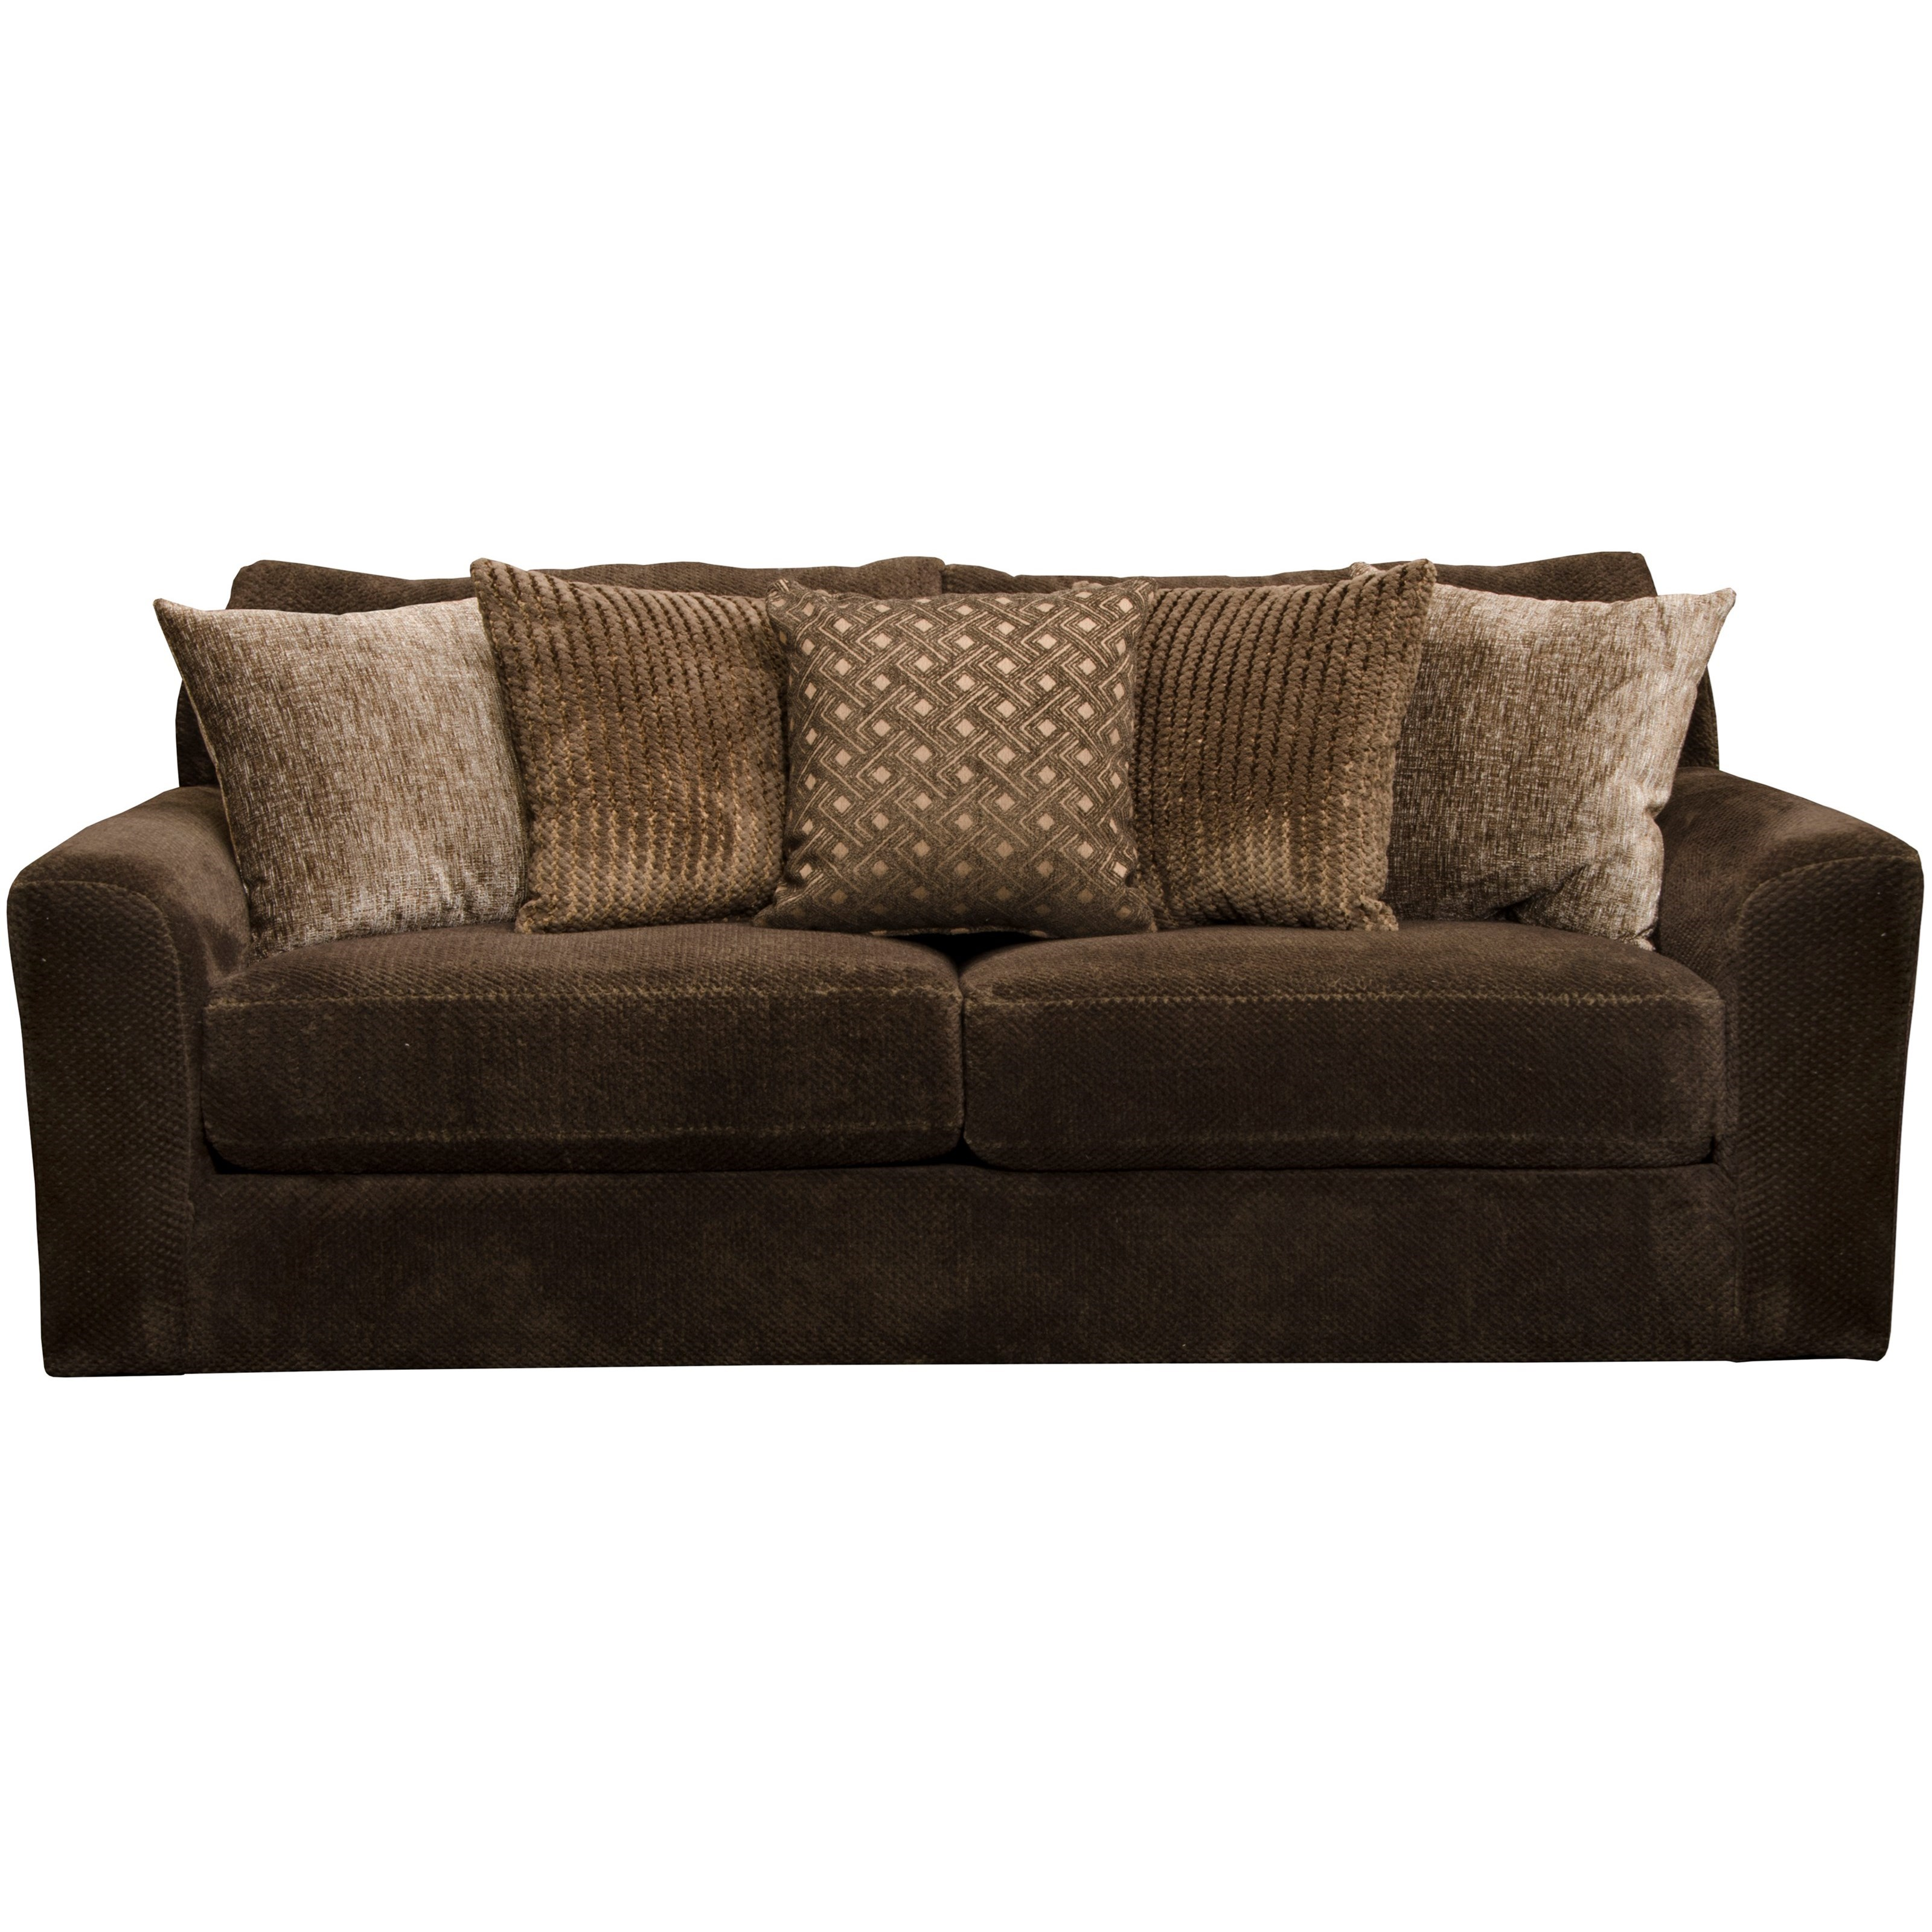 Midwood Sofa by Jackson Furniture at Northeast Factory Direct